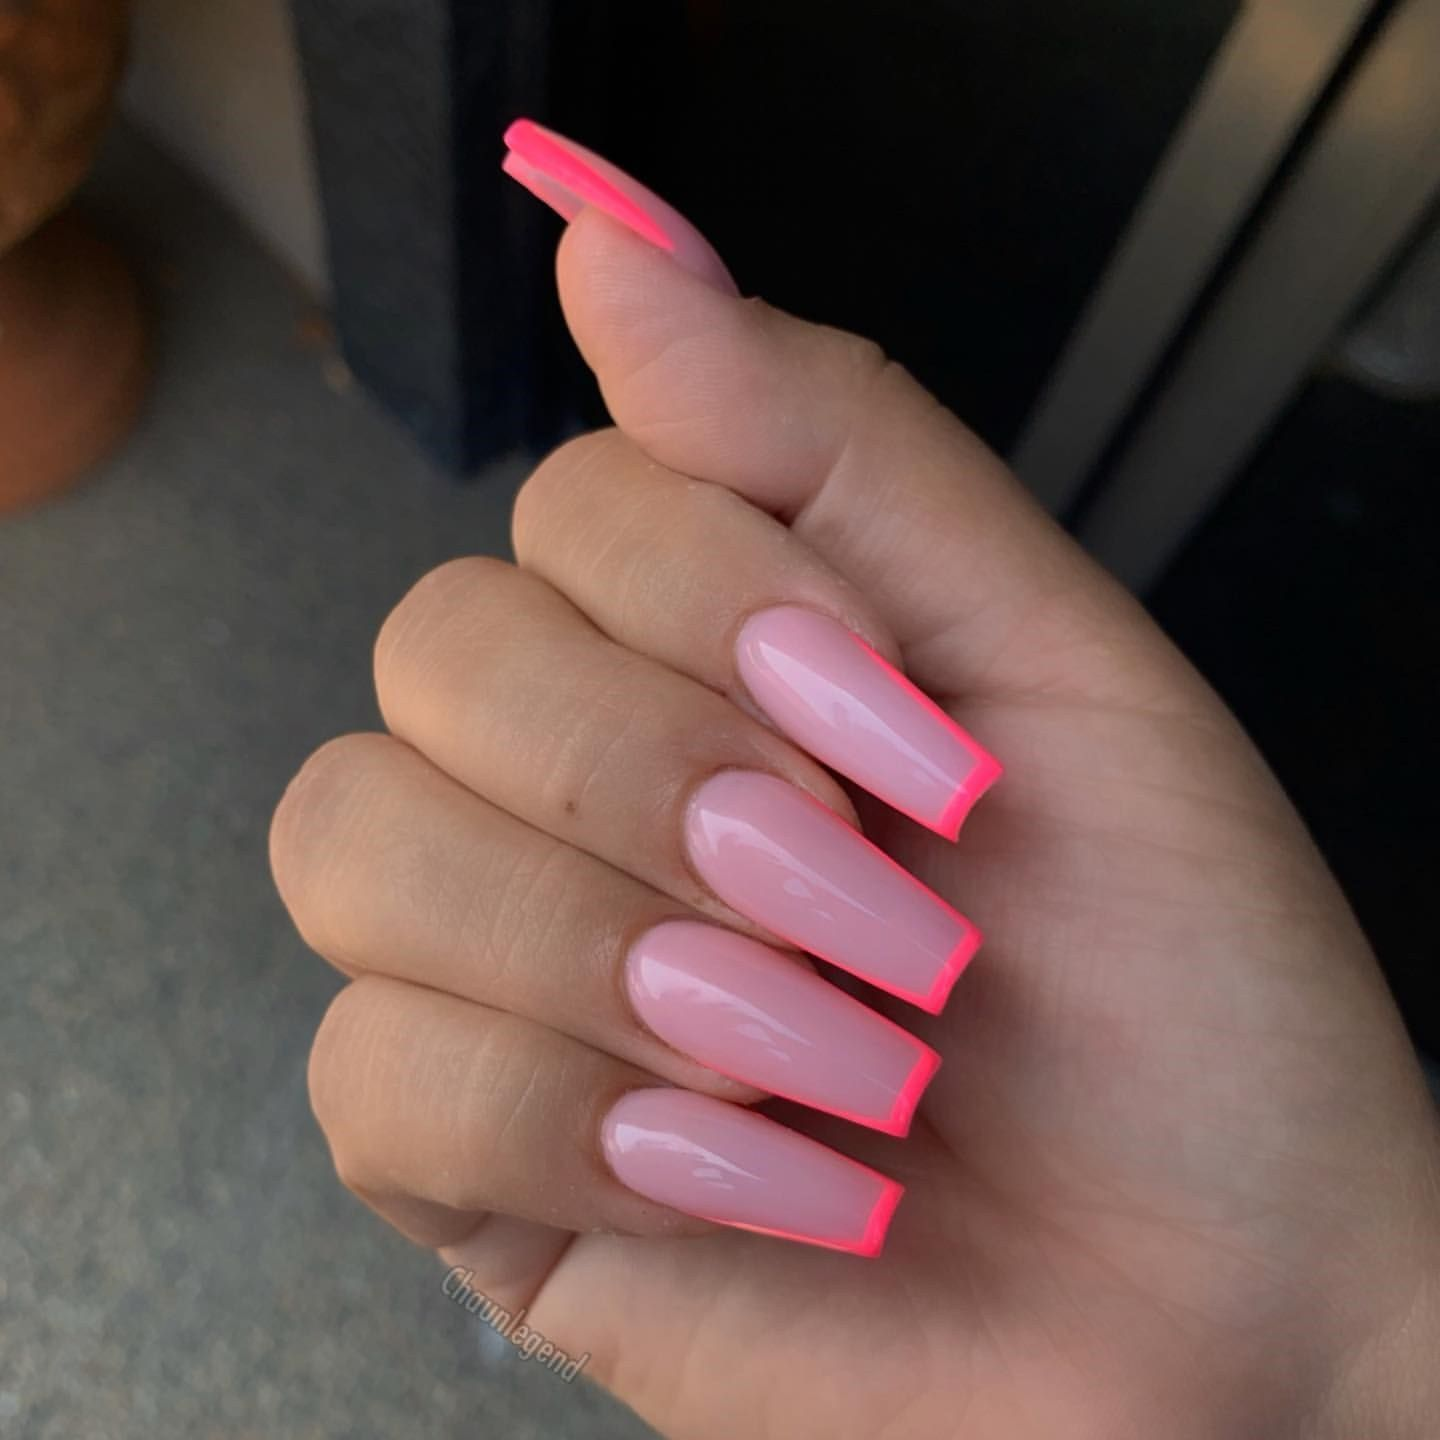 50+ The Best Coffin Nail Designs - Aesthetic acrylic nails ...